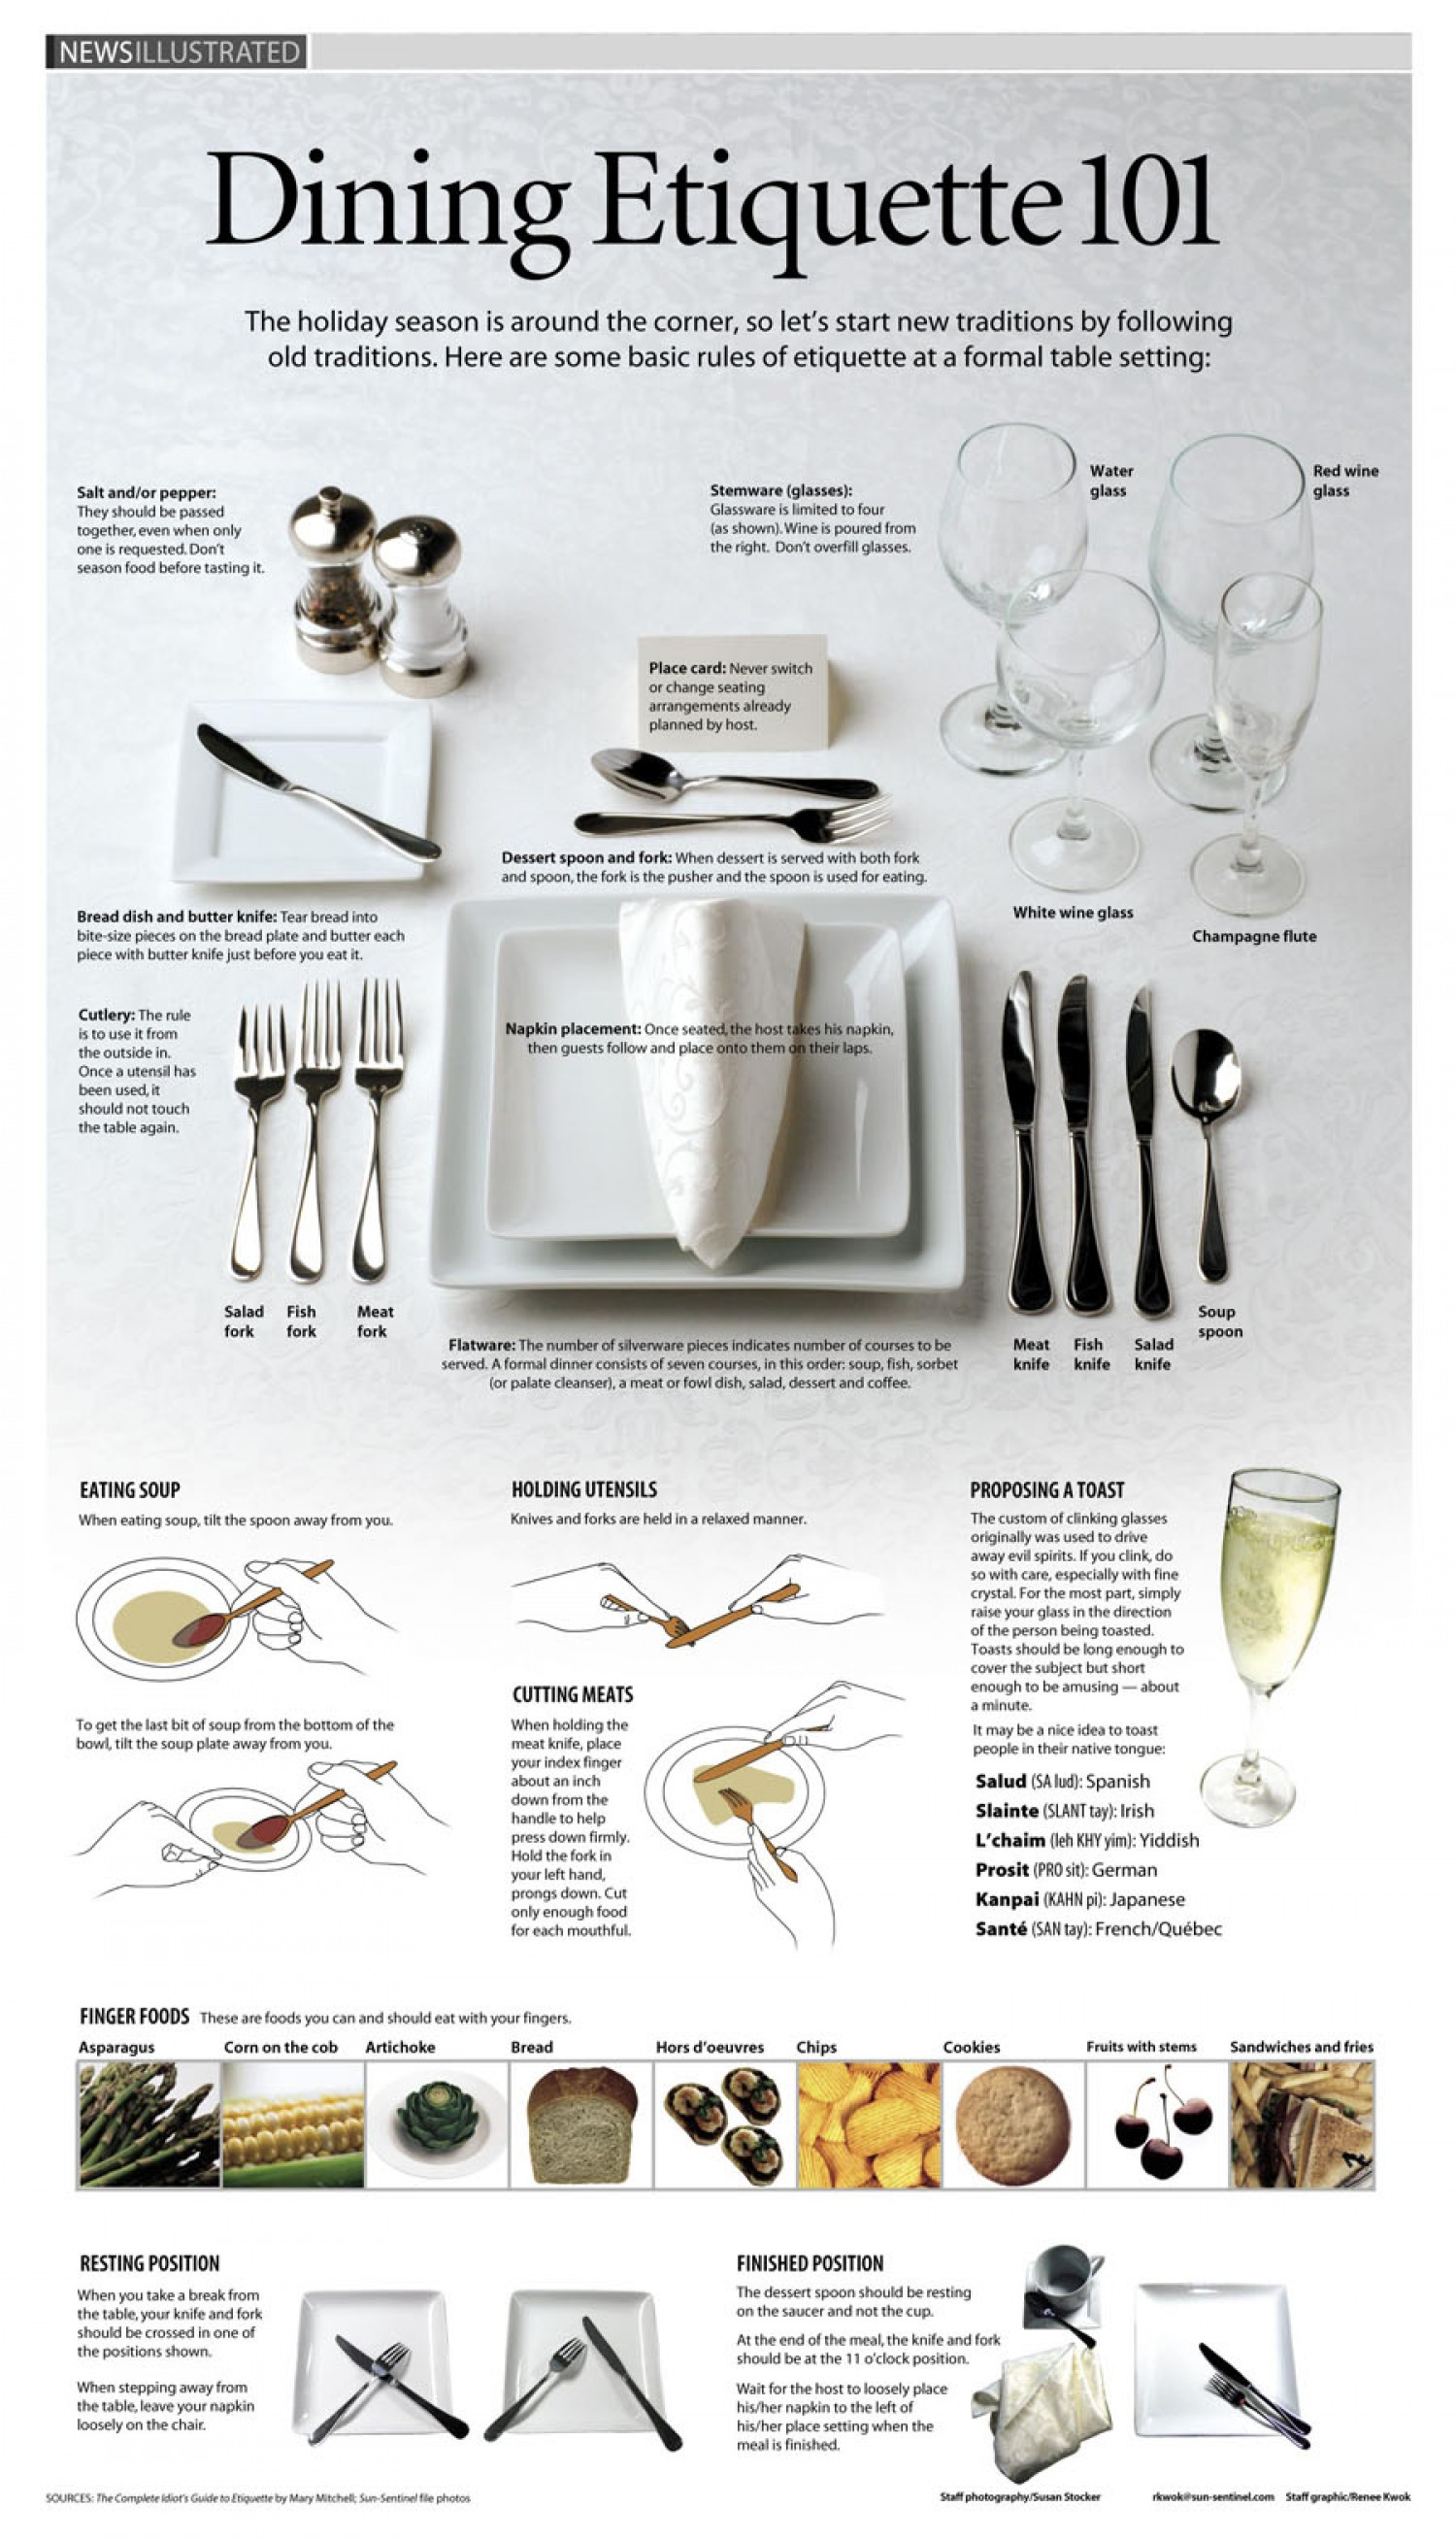 10 dining-etiquette-101_5029141b424ee_w1500